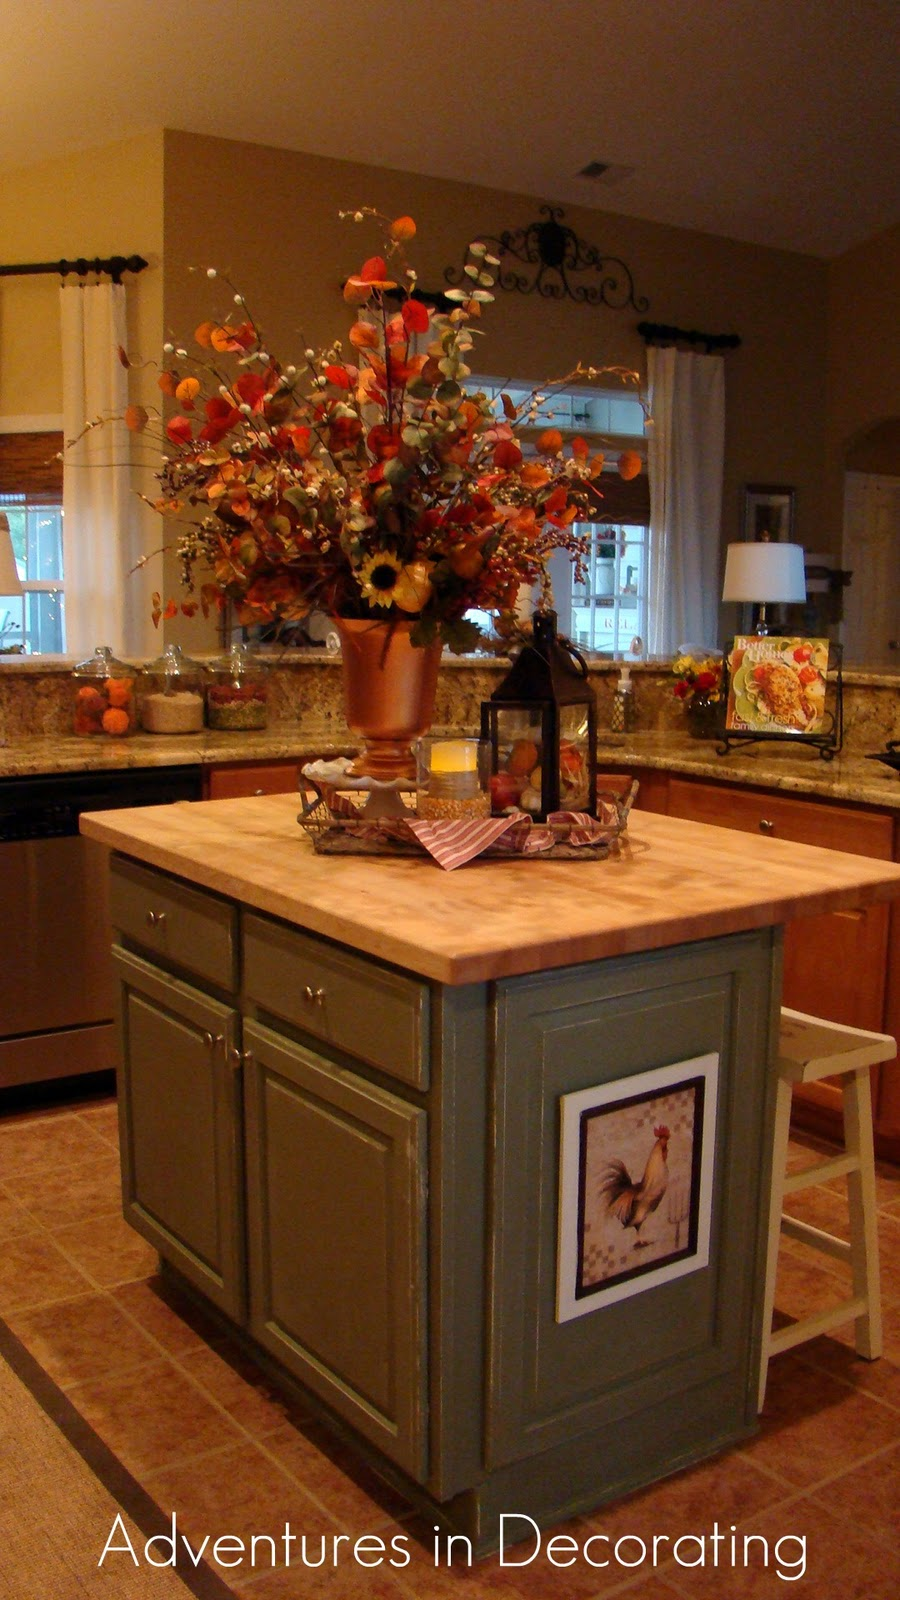 Adventures In Decorating: Fall In The Kitchen